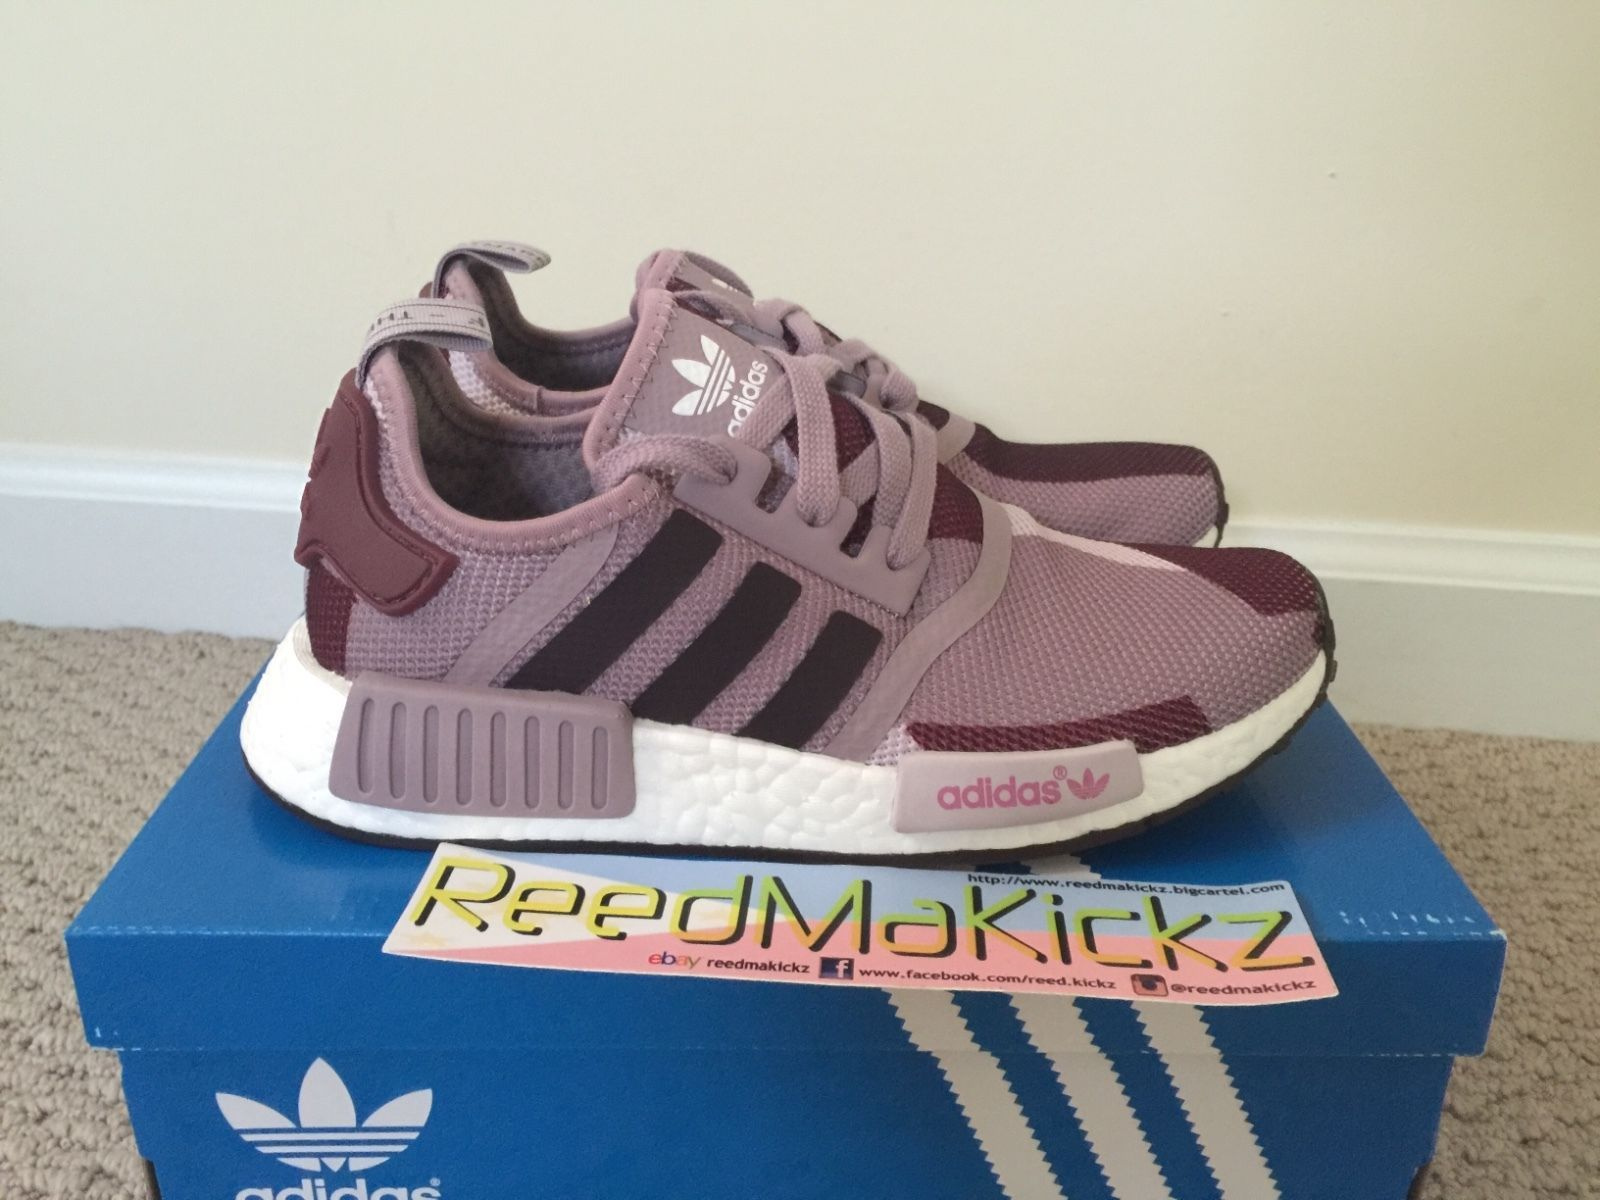 994d47670 Adidas NMD R1 Blanch Purple Womens sizes S75721 in 2019